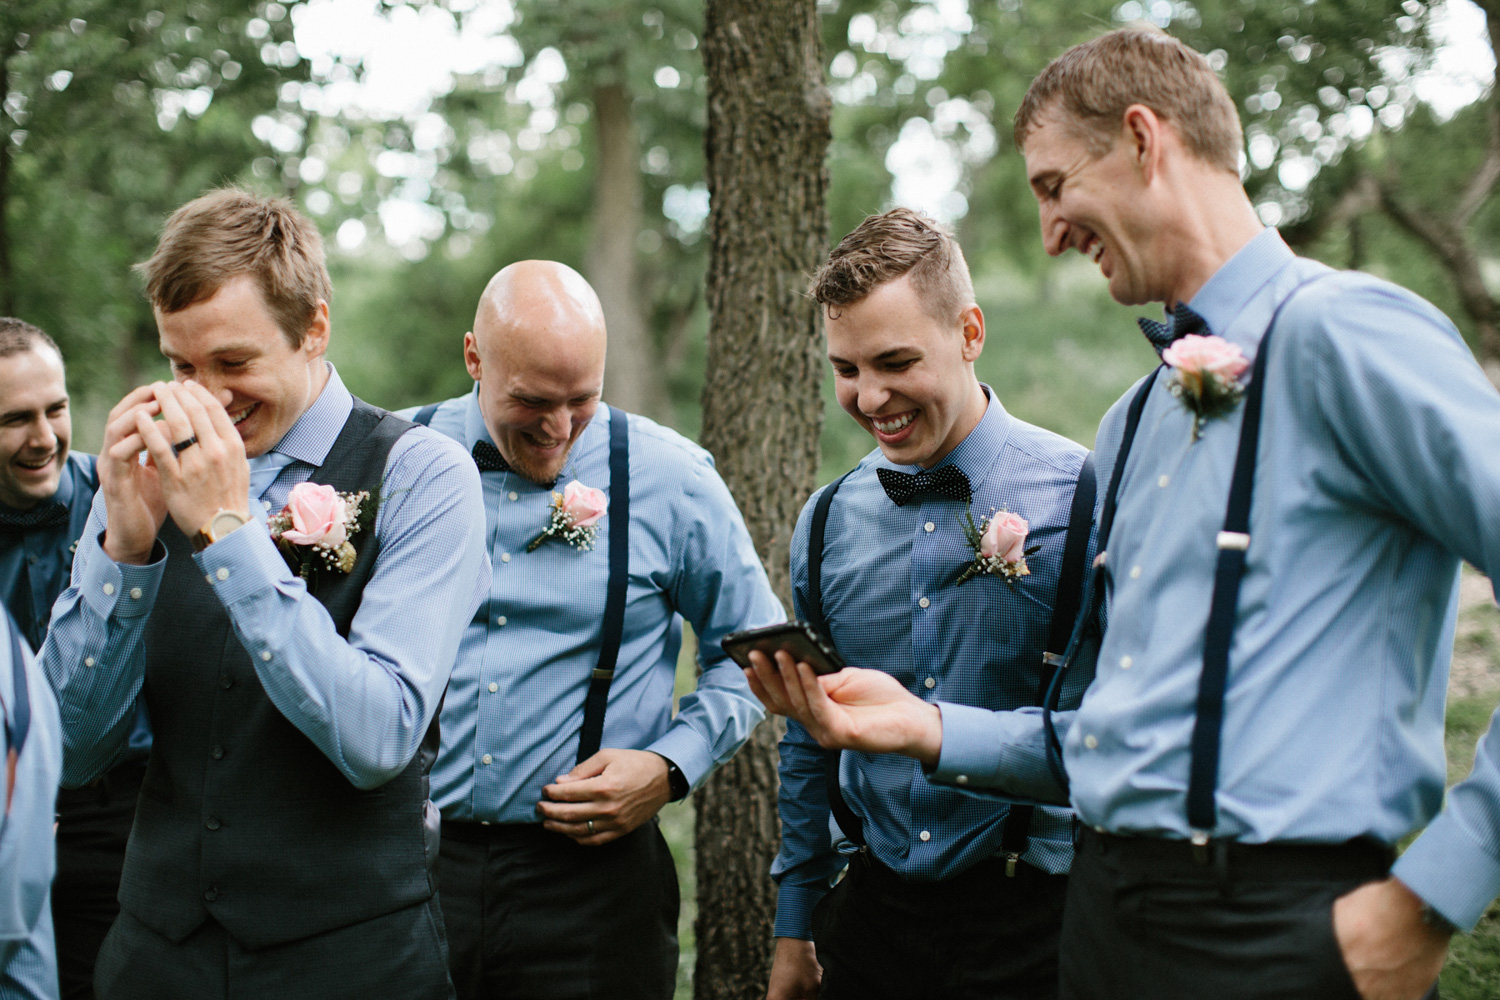 Outdoor_Wedding_SiouxFalls_MaryJoWegnerArboretum_Photographer_Calli&Jon_098.jpg